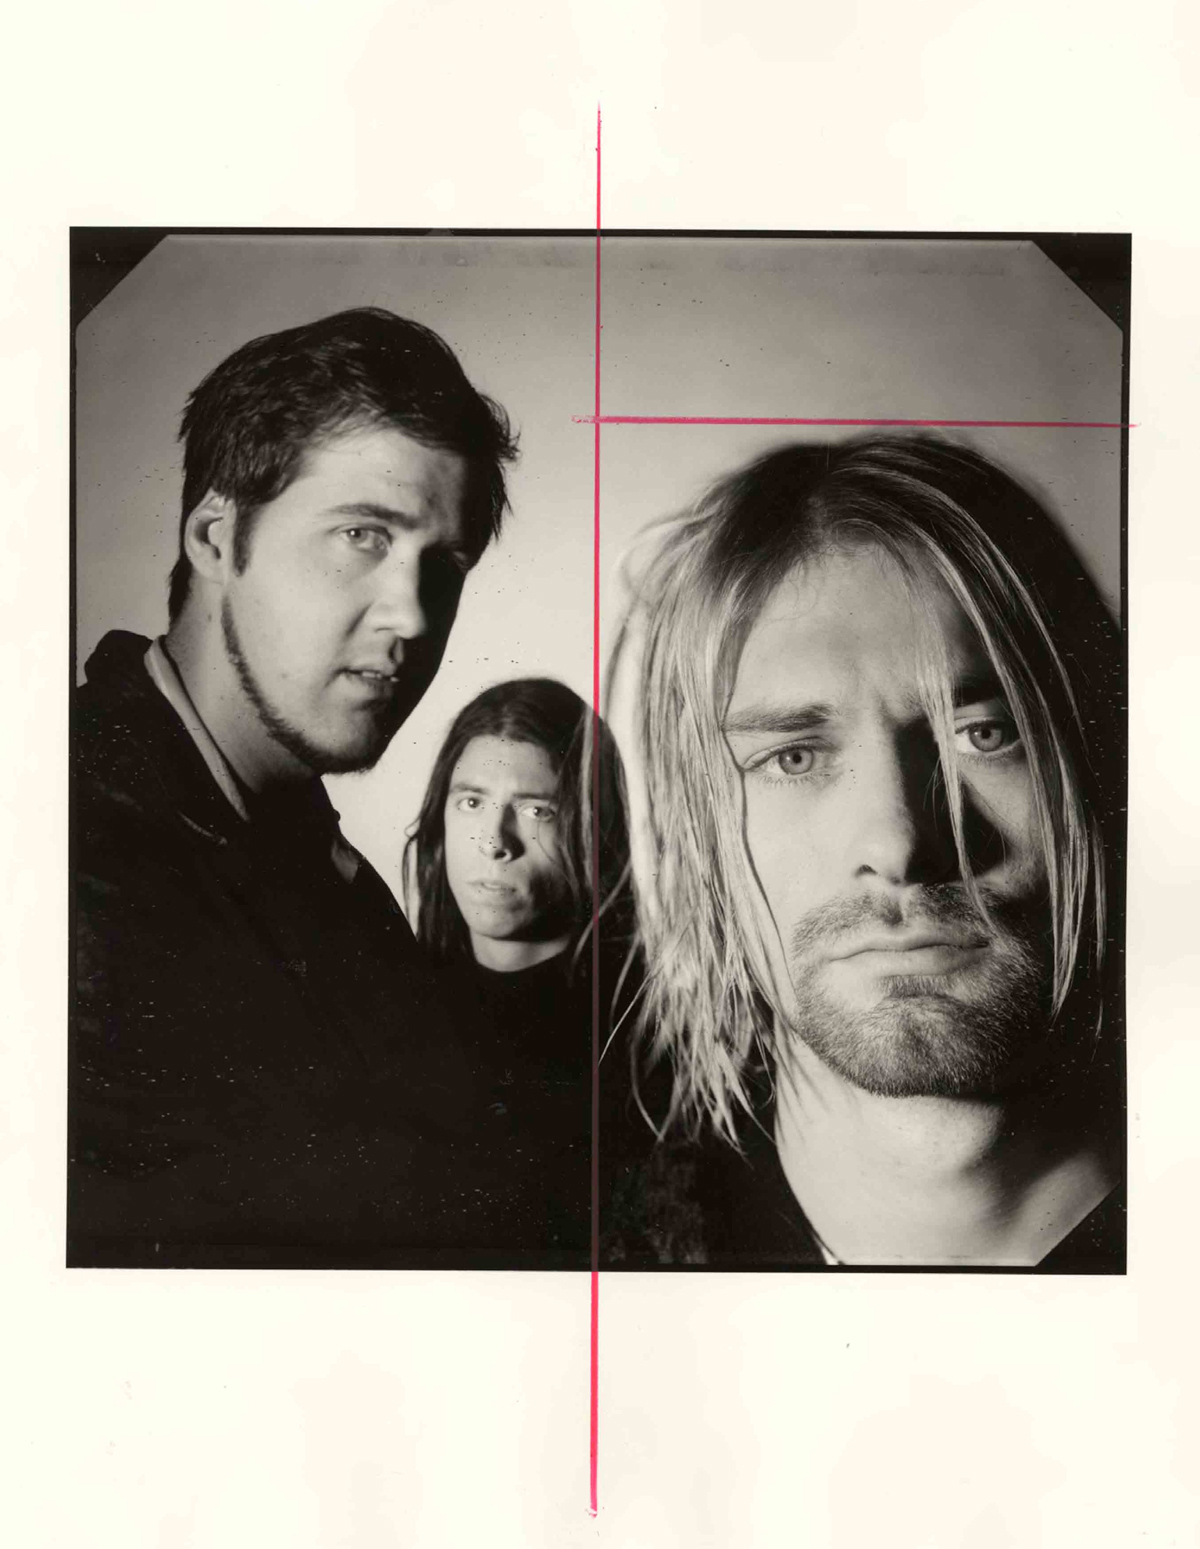 Nirvana Kurt Cobain Spin Magazine 1993 photo shoot